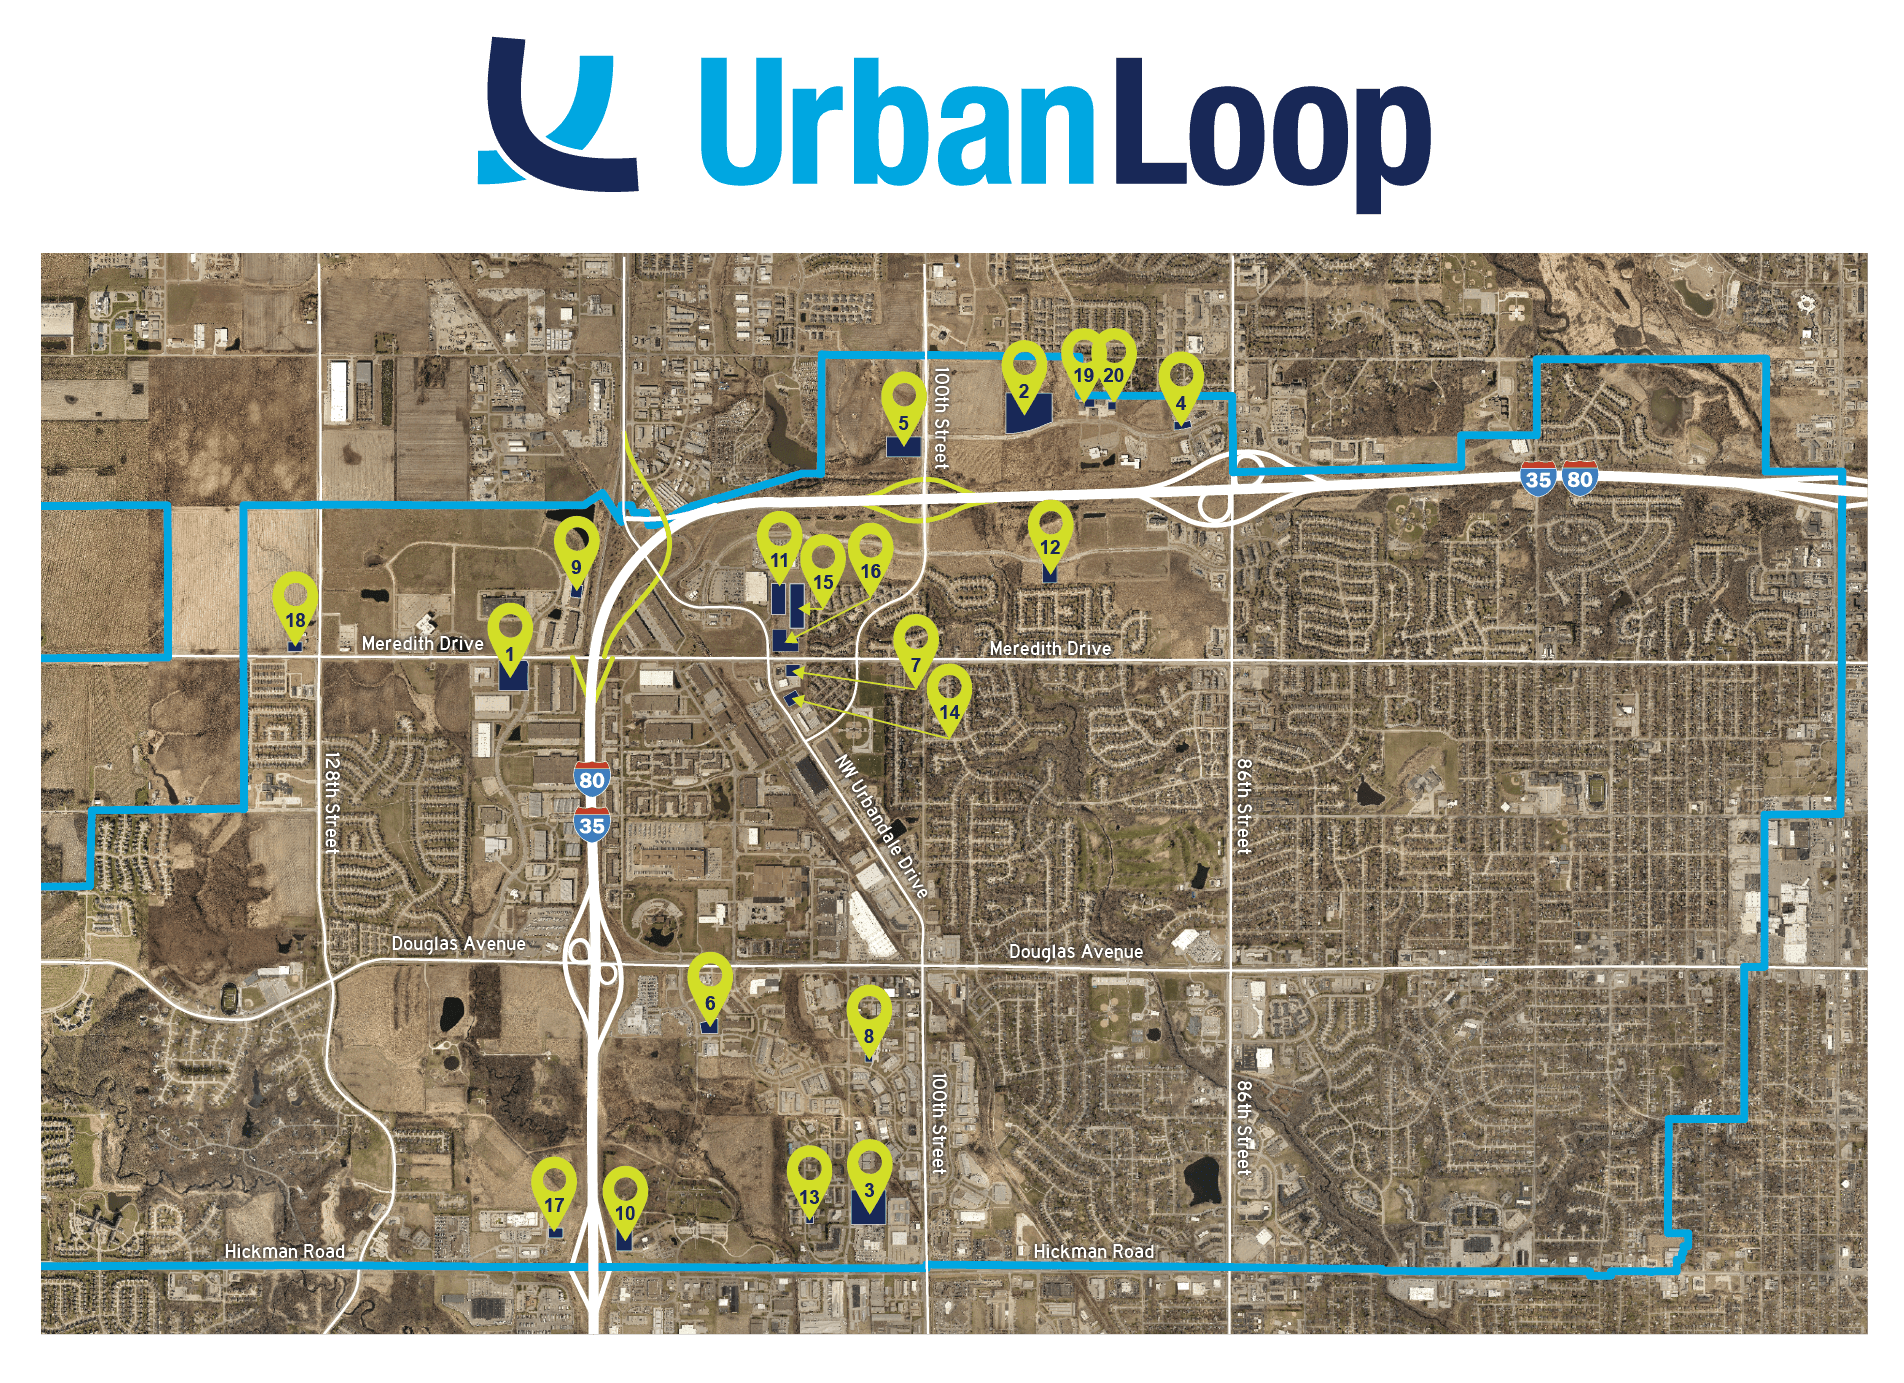 Urban Loop Project Map